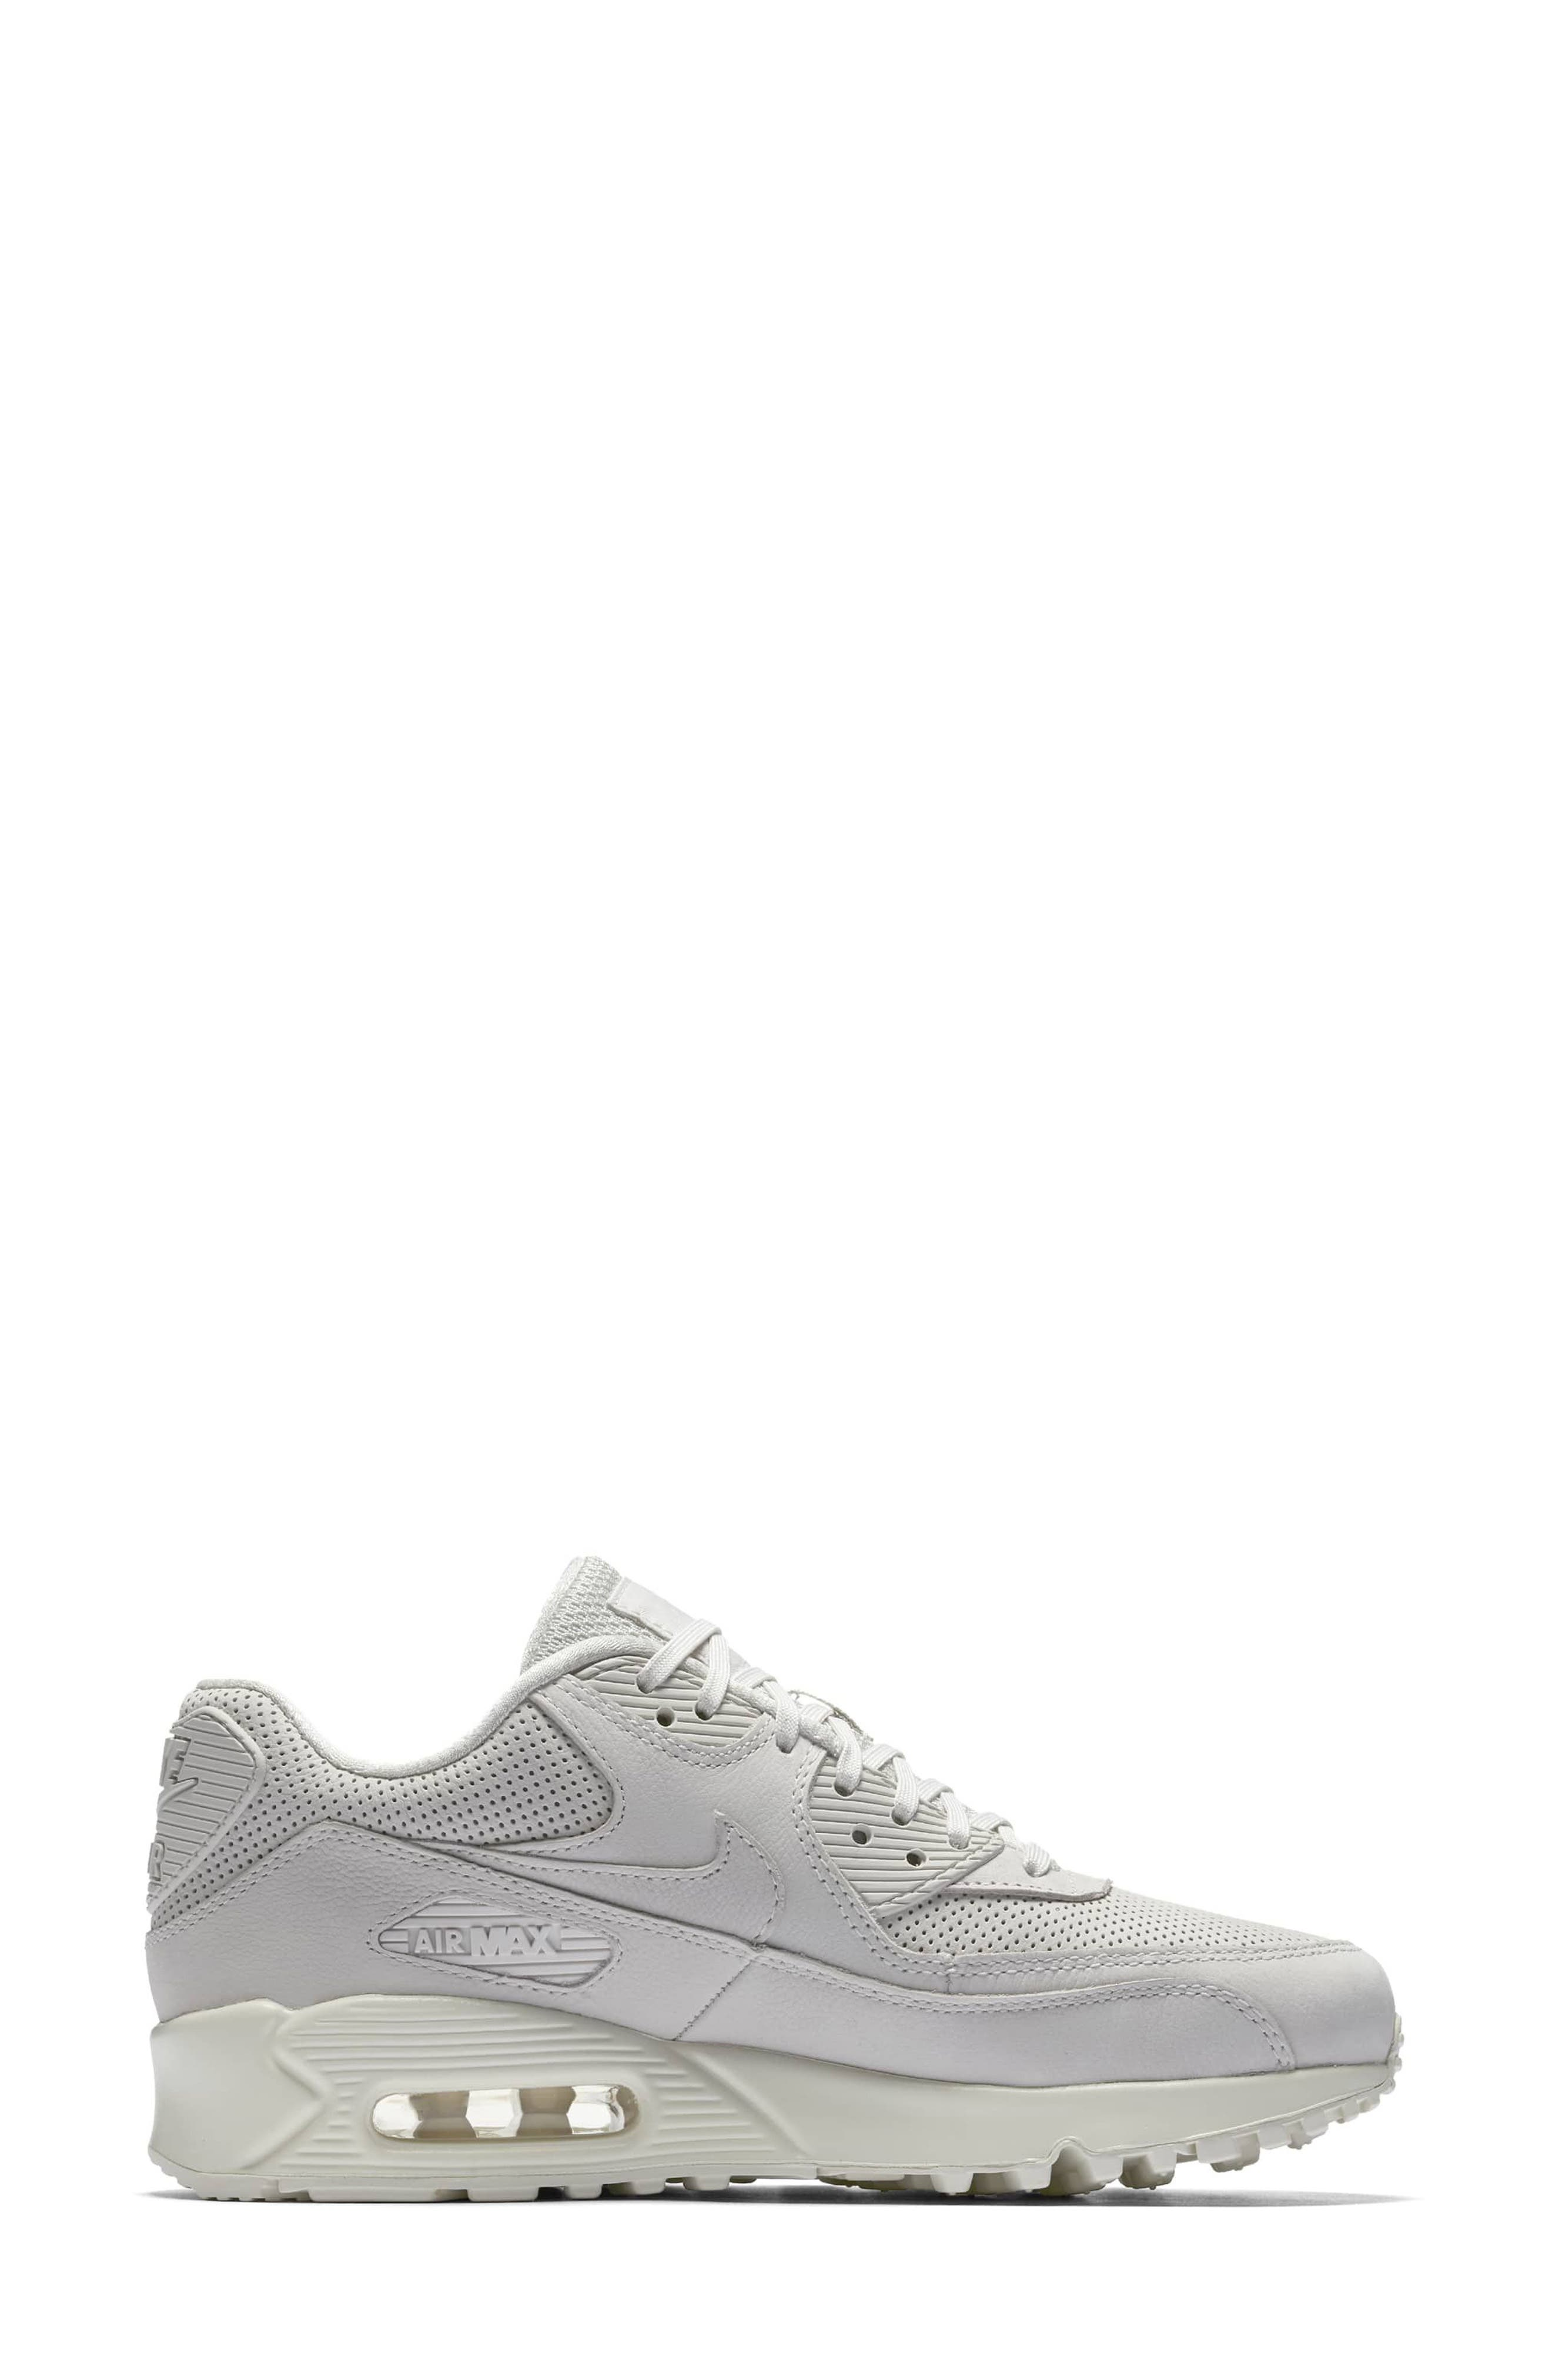 Alternate Image 2  - Nike Air Max 90 Pinnacle Sneaker (Women's)